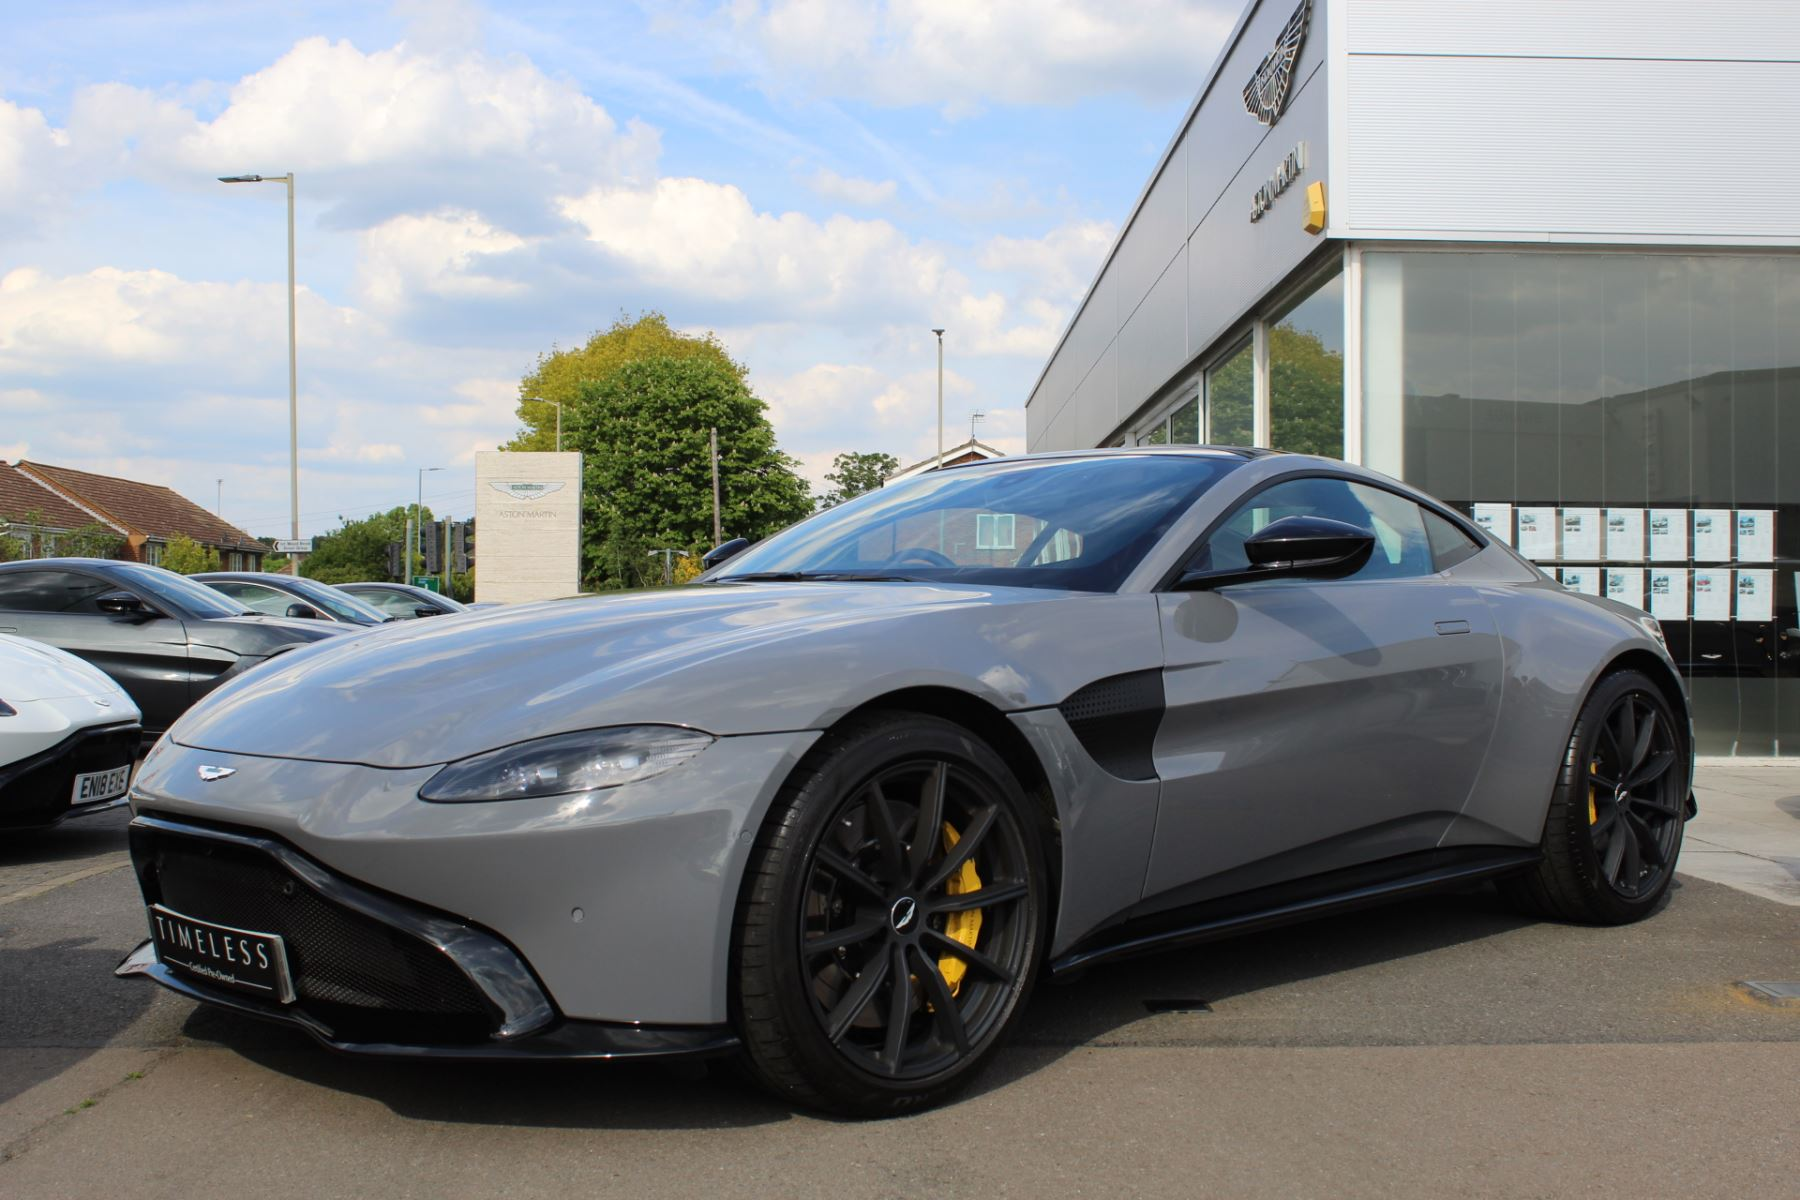 Aston Martin V8 Vantage Coupe 2dr ZF 8 Speed image 3